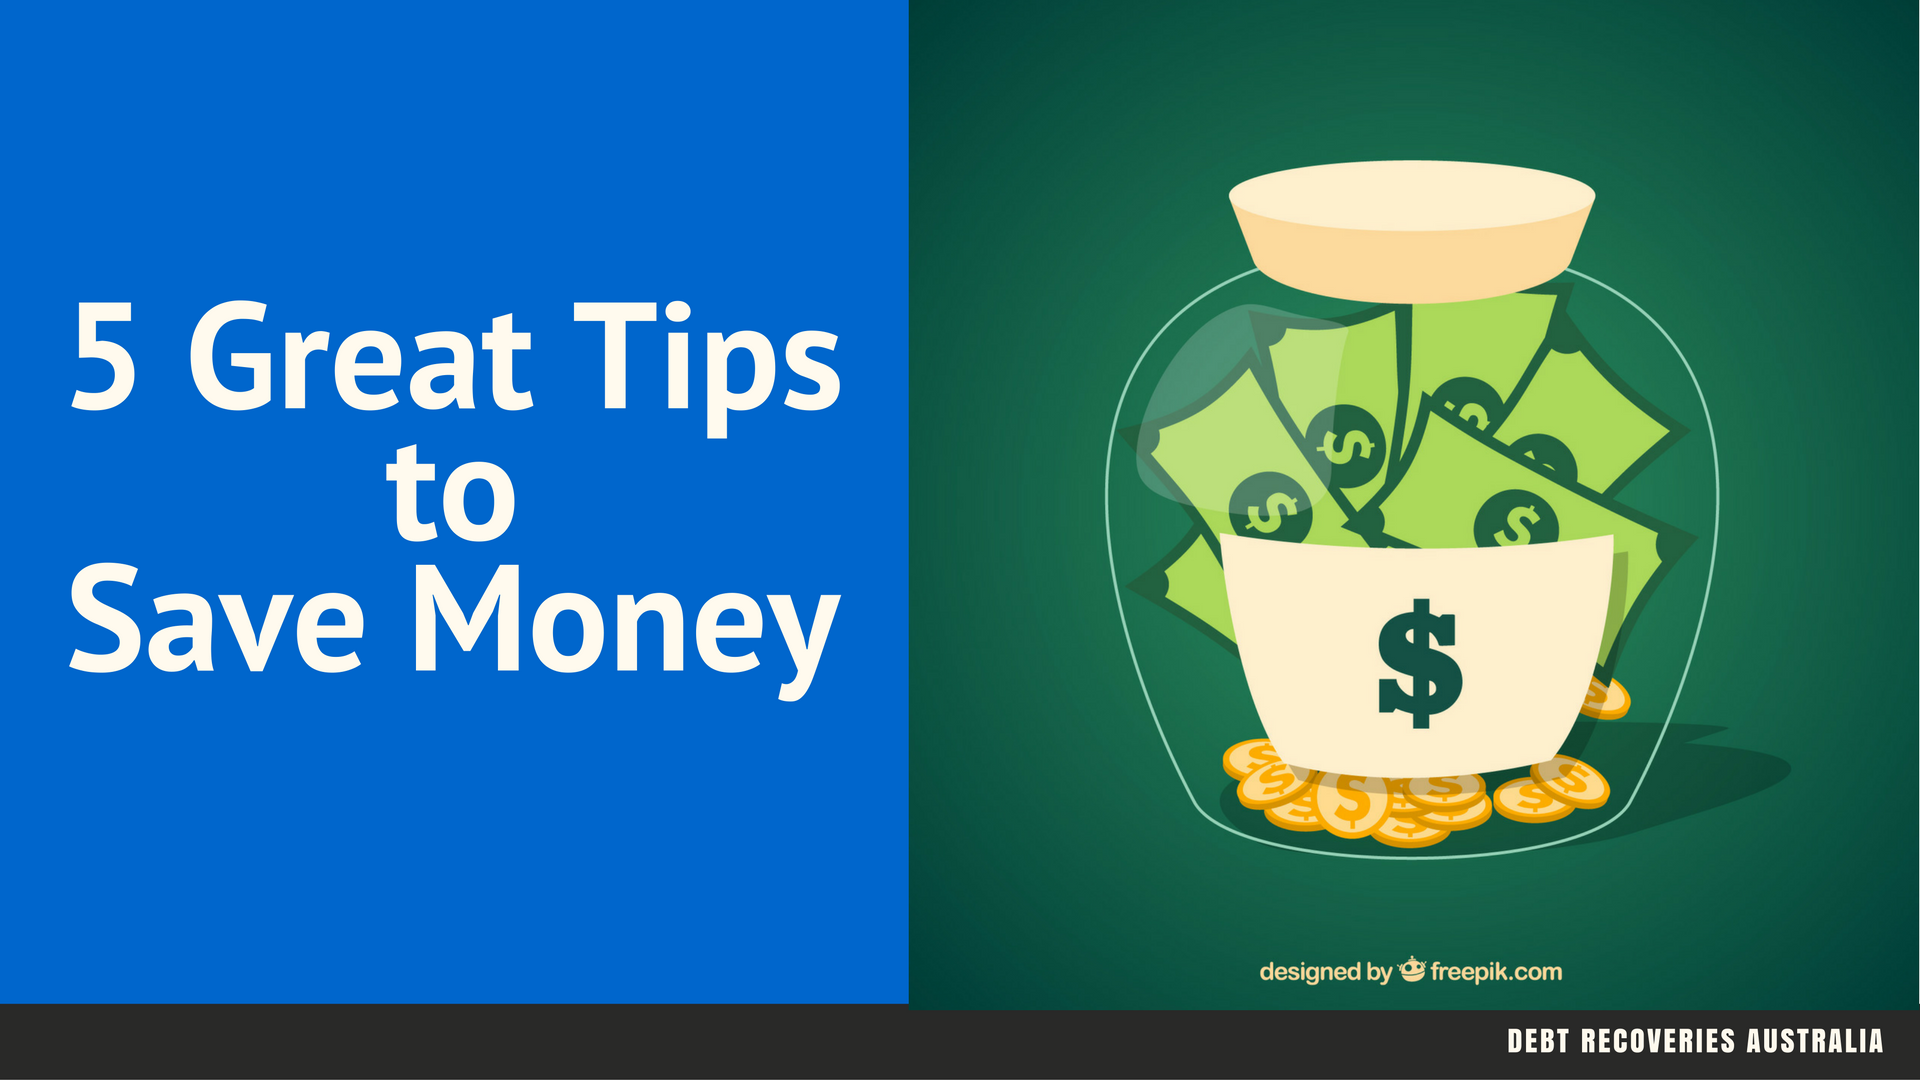 5 Great Tips to Save Money